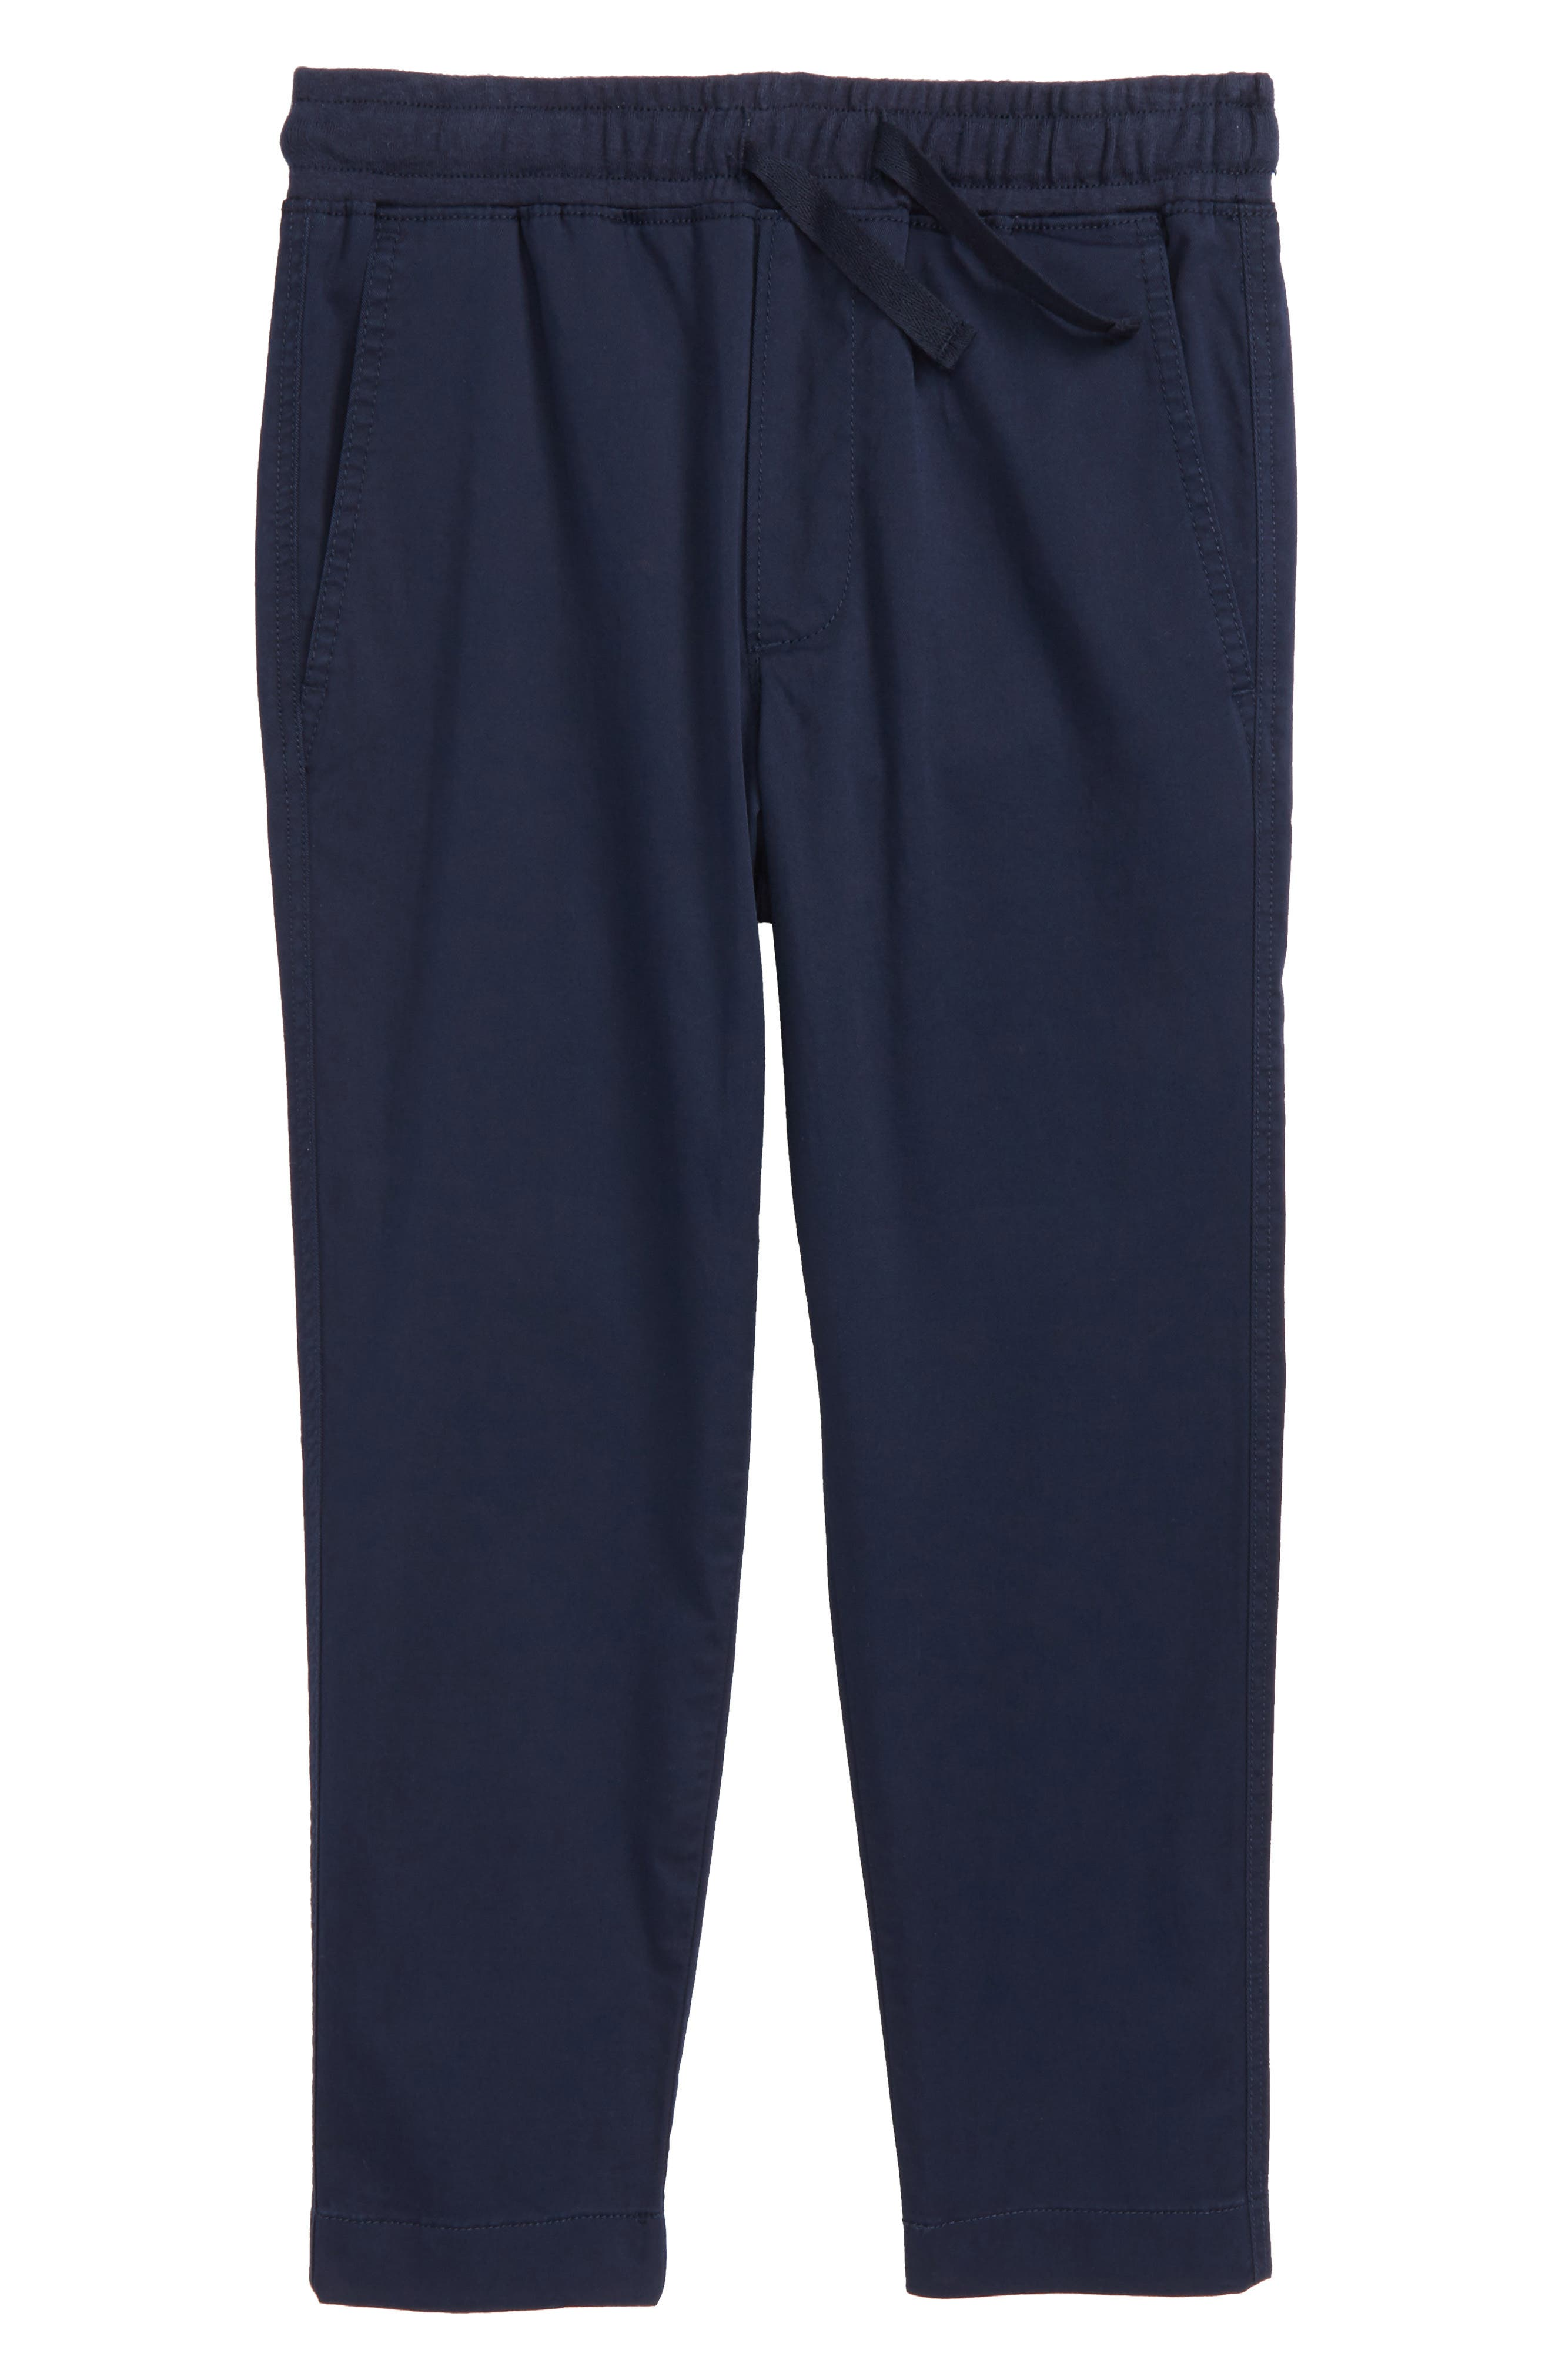 CREWCUTS BY J.CREW Pull On Pants, Main, color, INDIGO